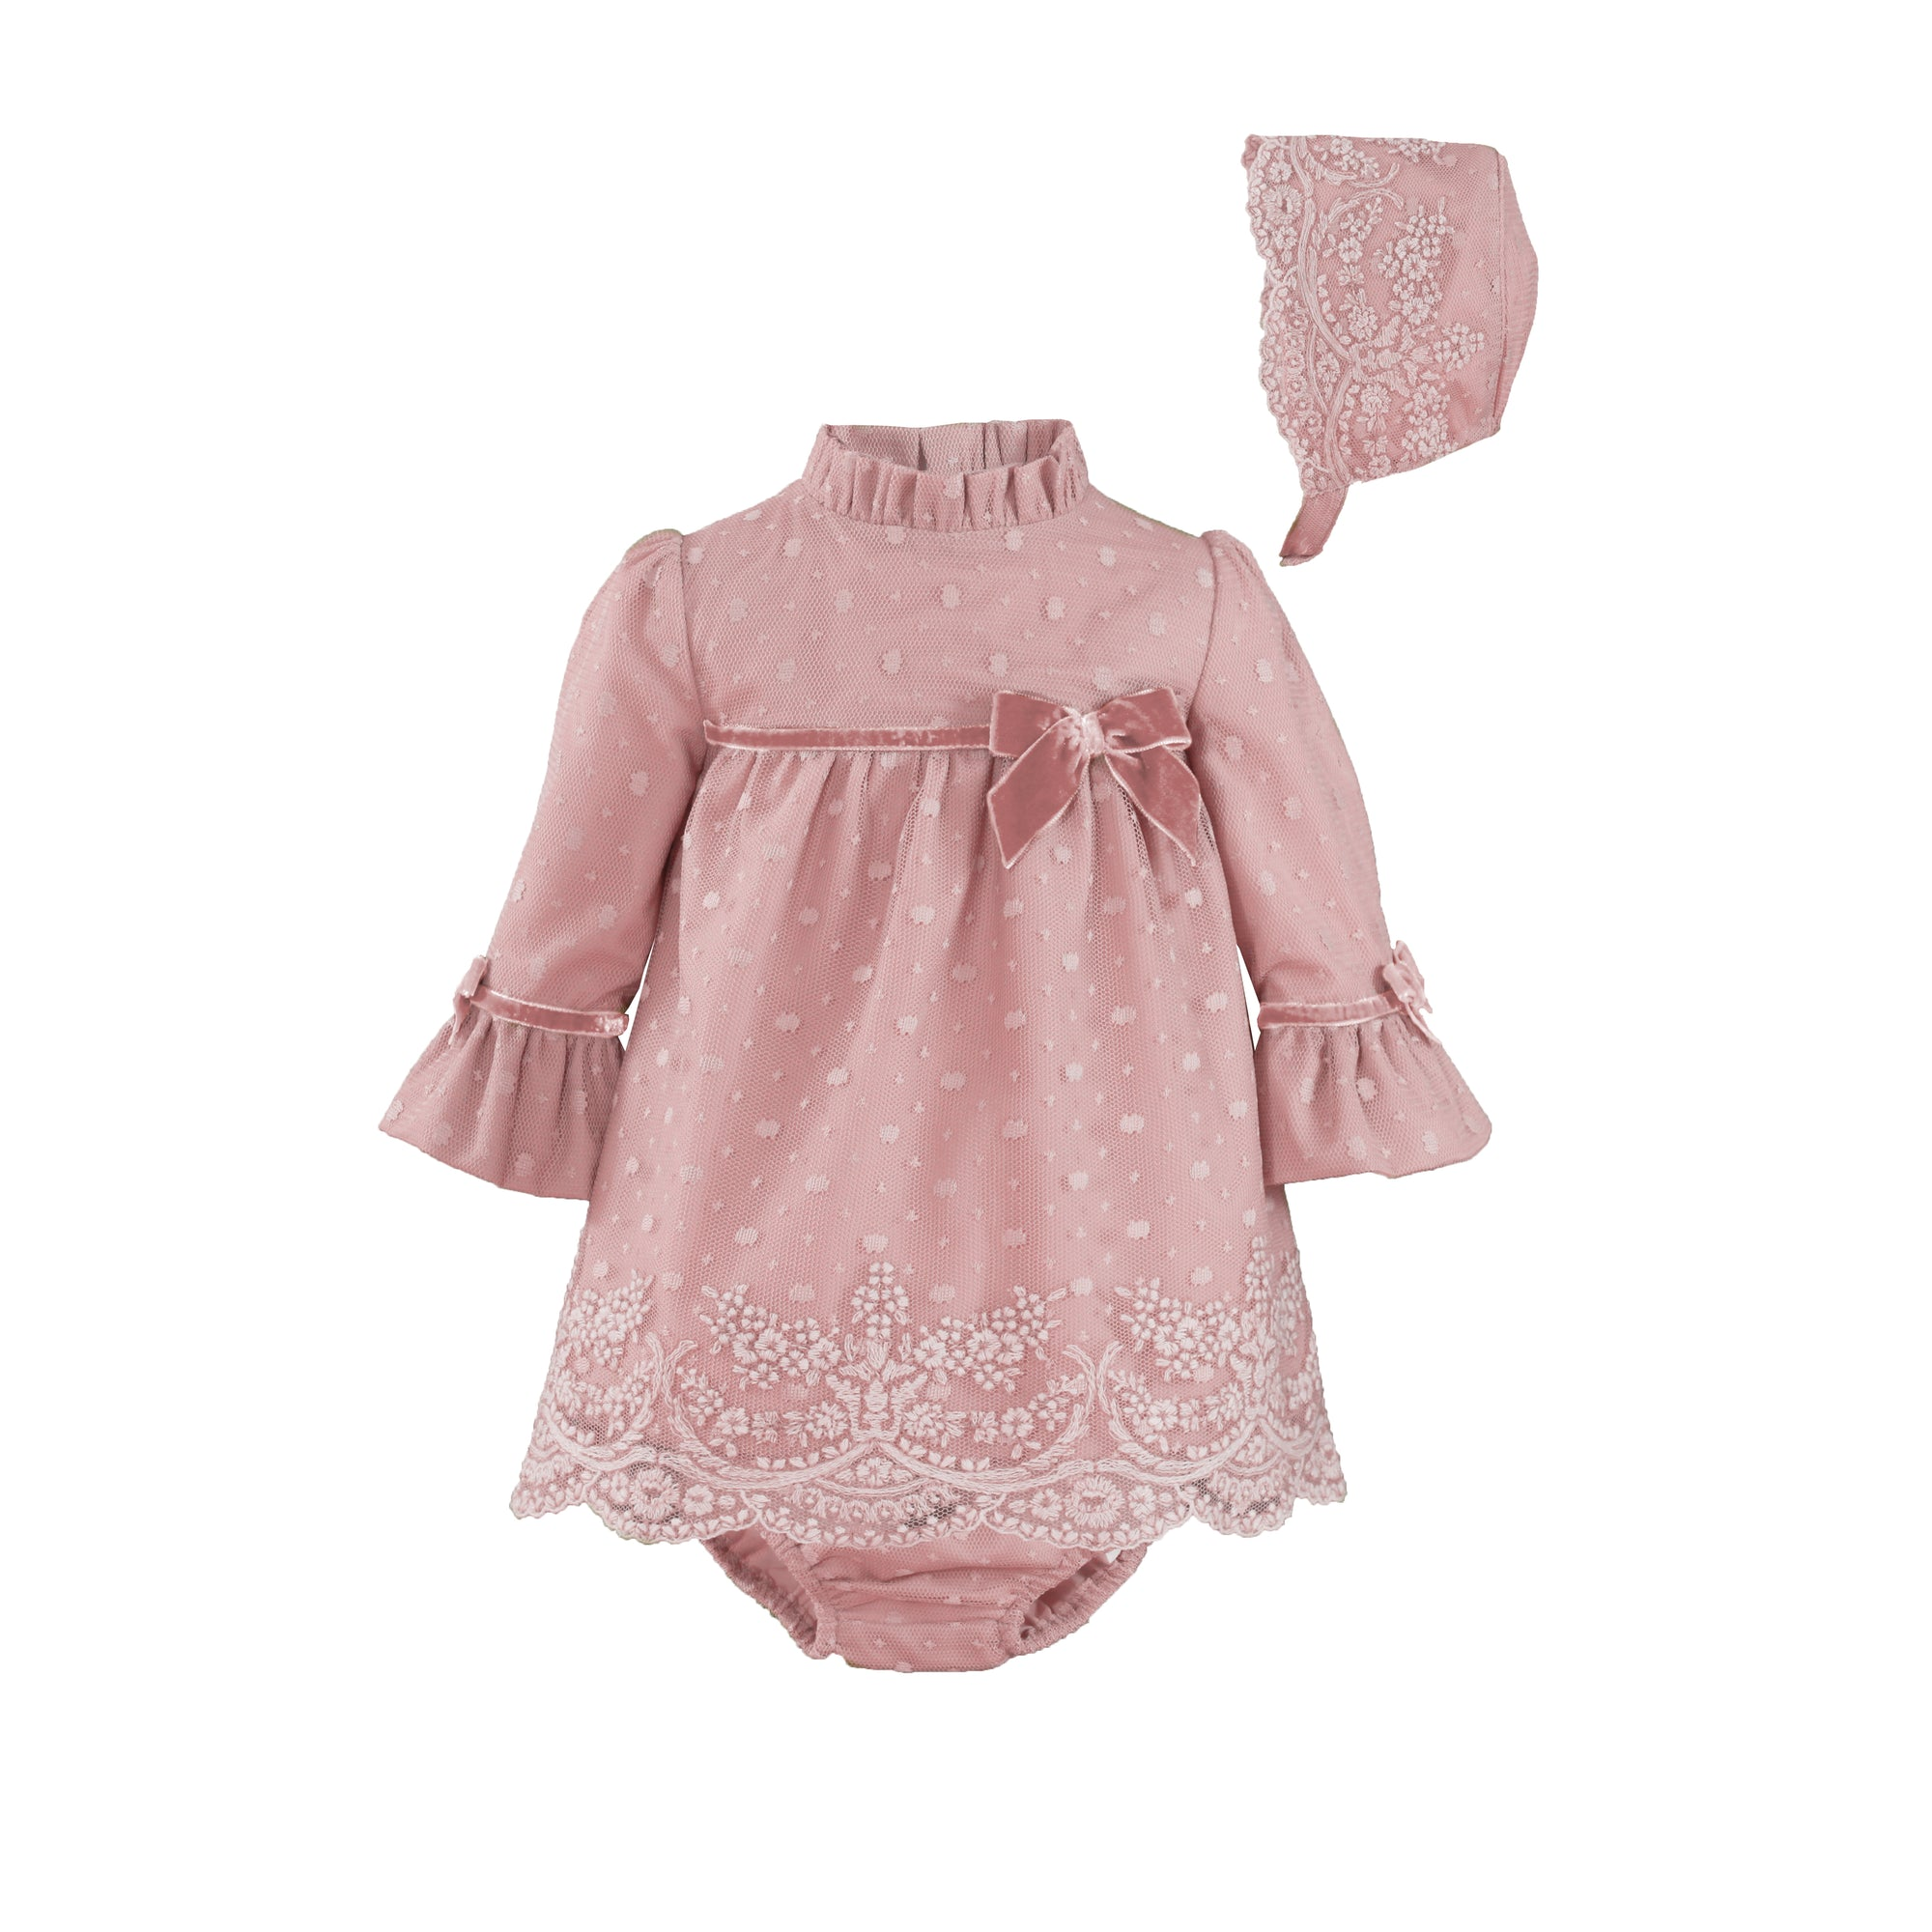 Beautiful Miranda Dusty pink Dress/bloomers/bonnet 3 piece set